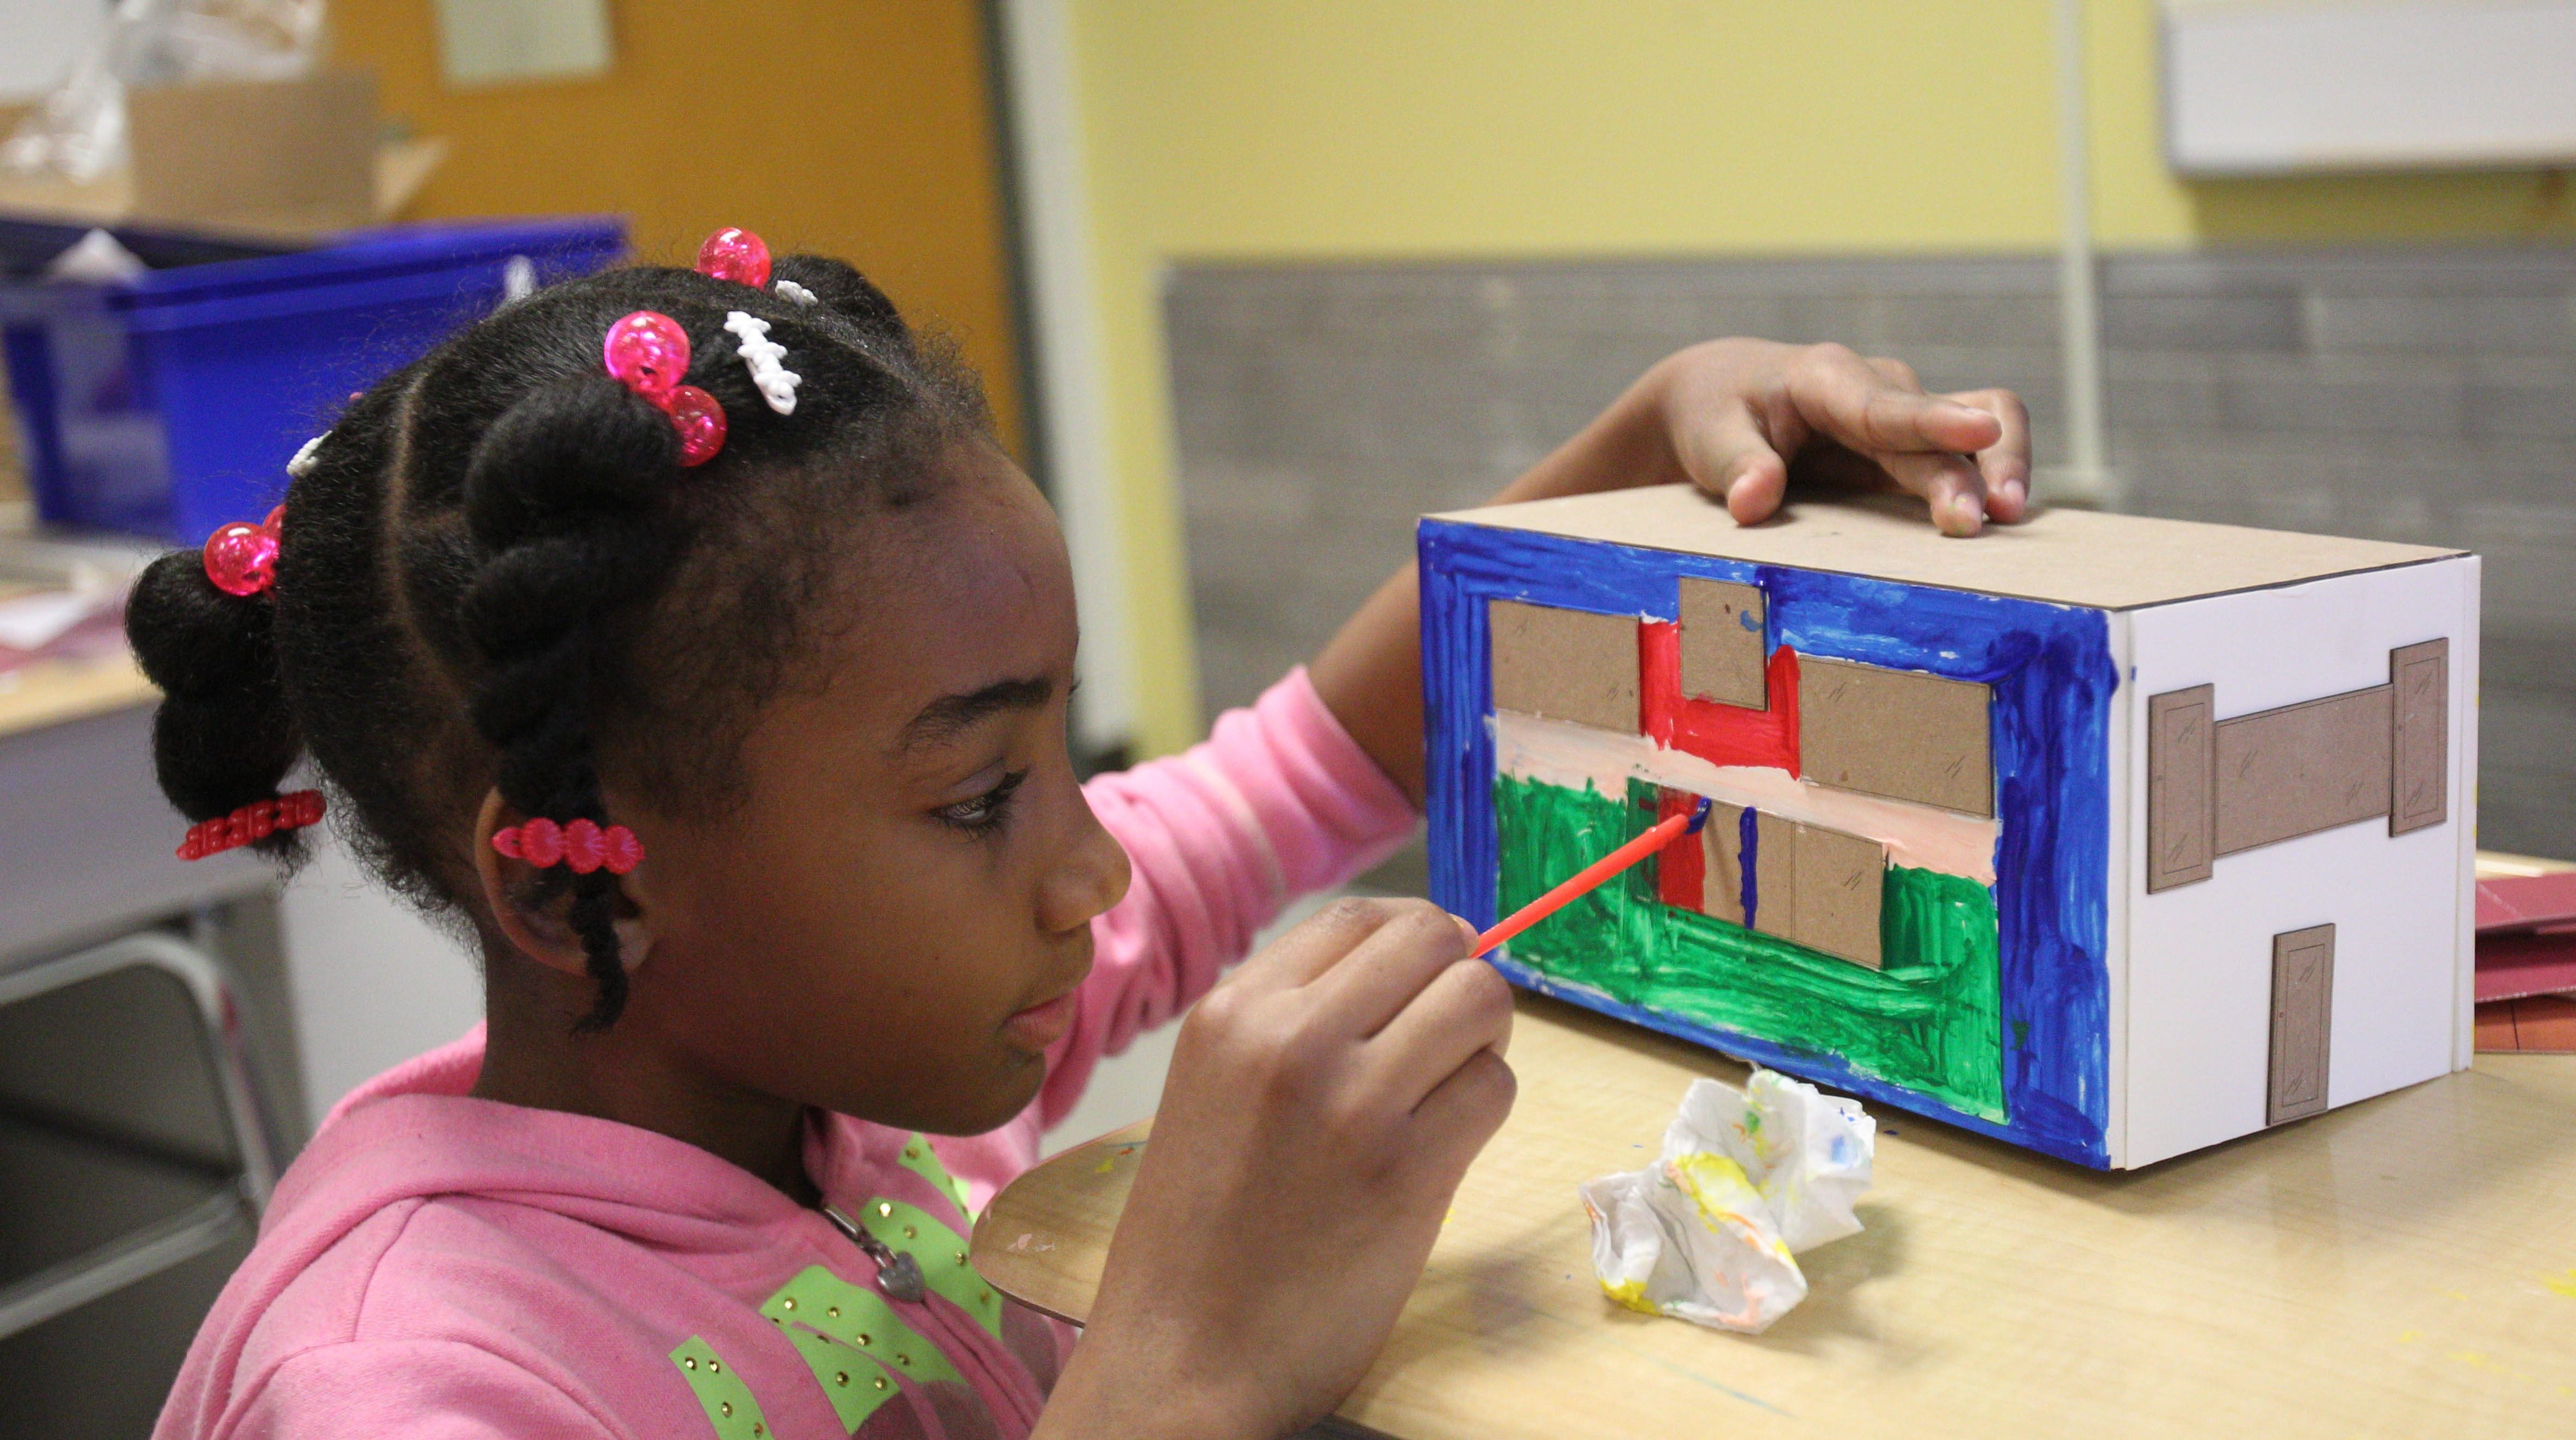 Shenelle Brown works at School 53 on the house she designed as part of the Architecture + Education program.